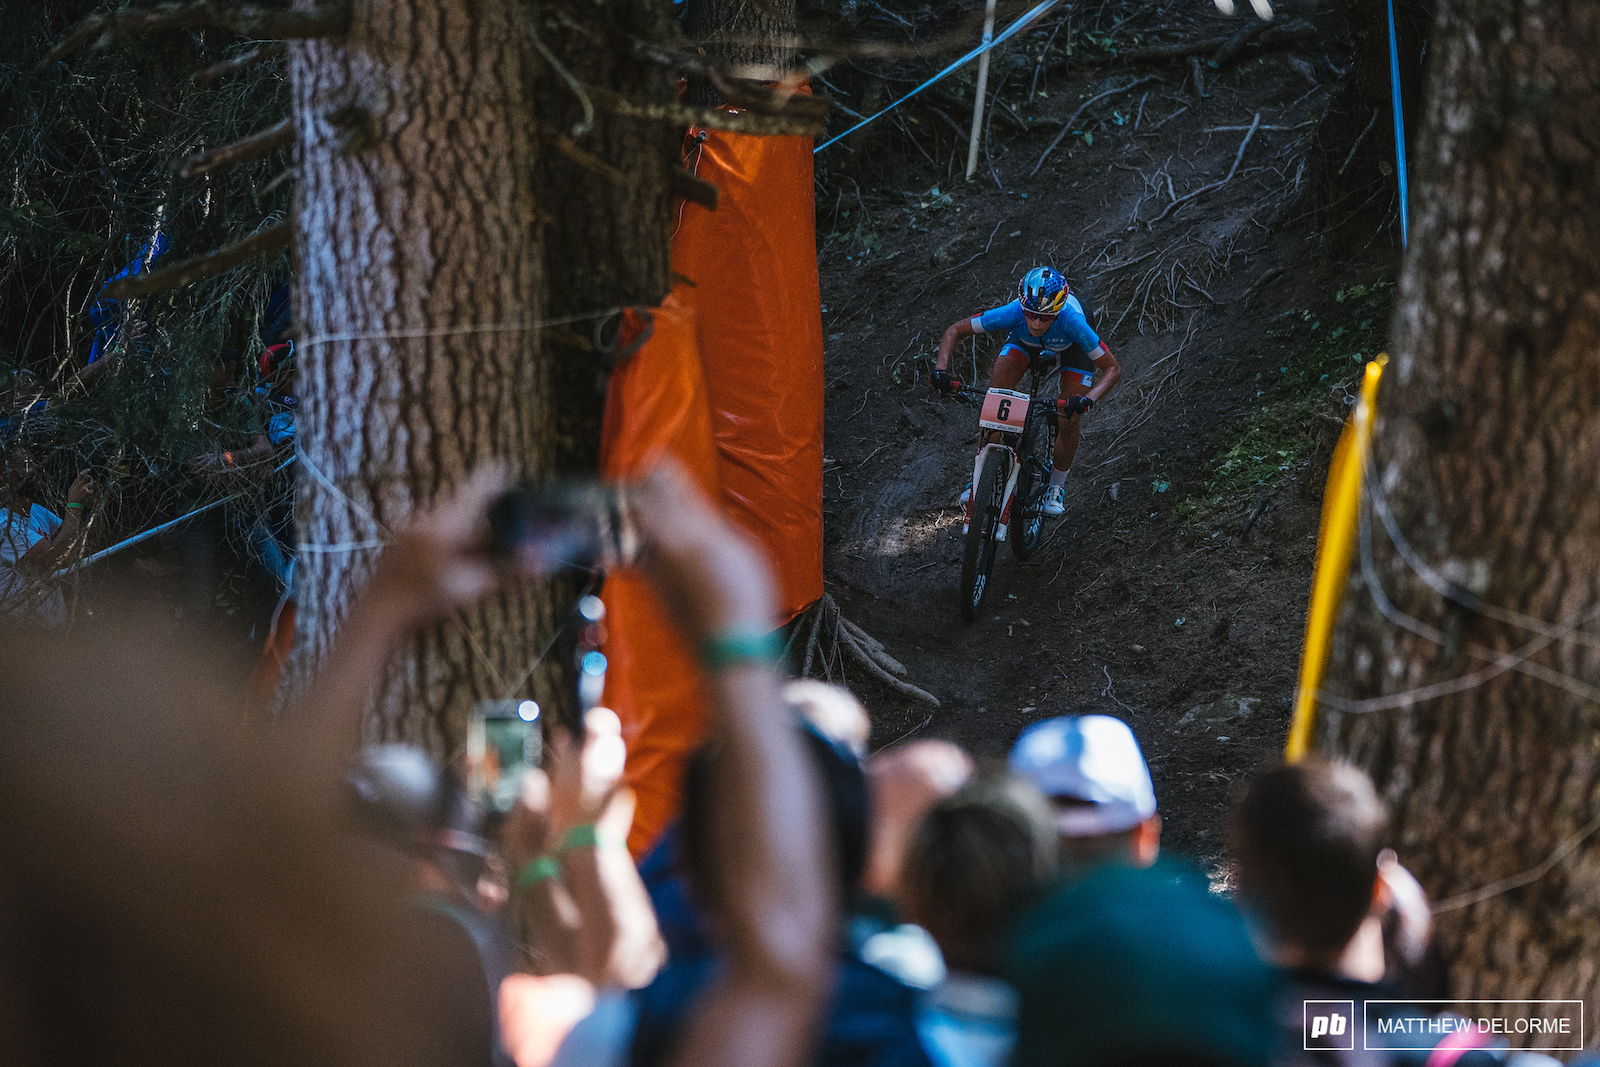 Emily Batty left nothing out on course. The Canadian had a stellar ride to third today.